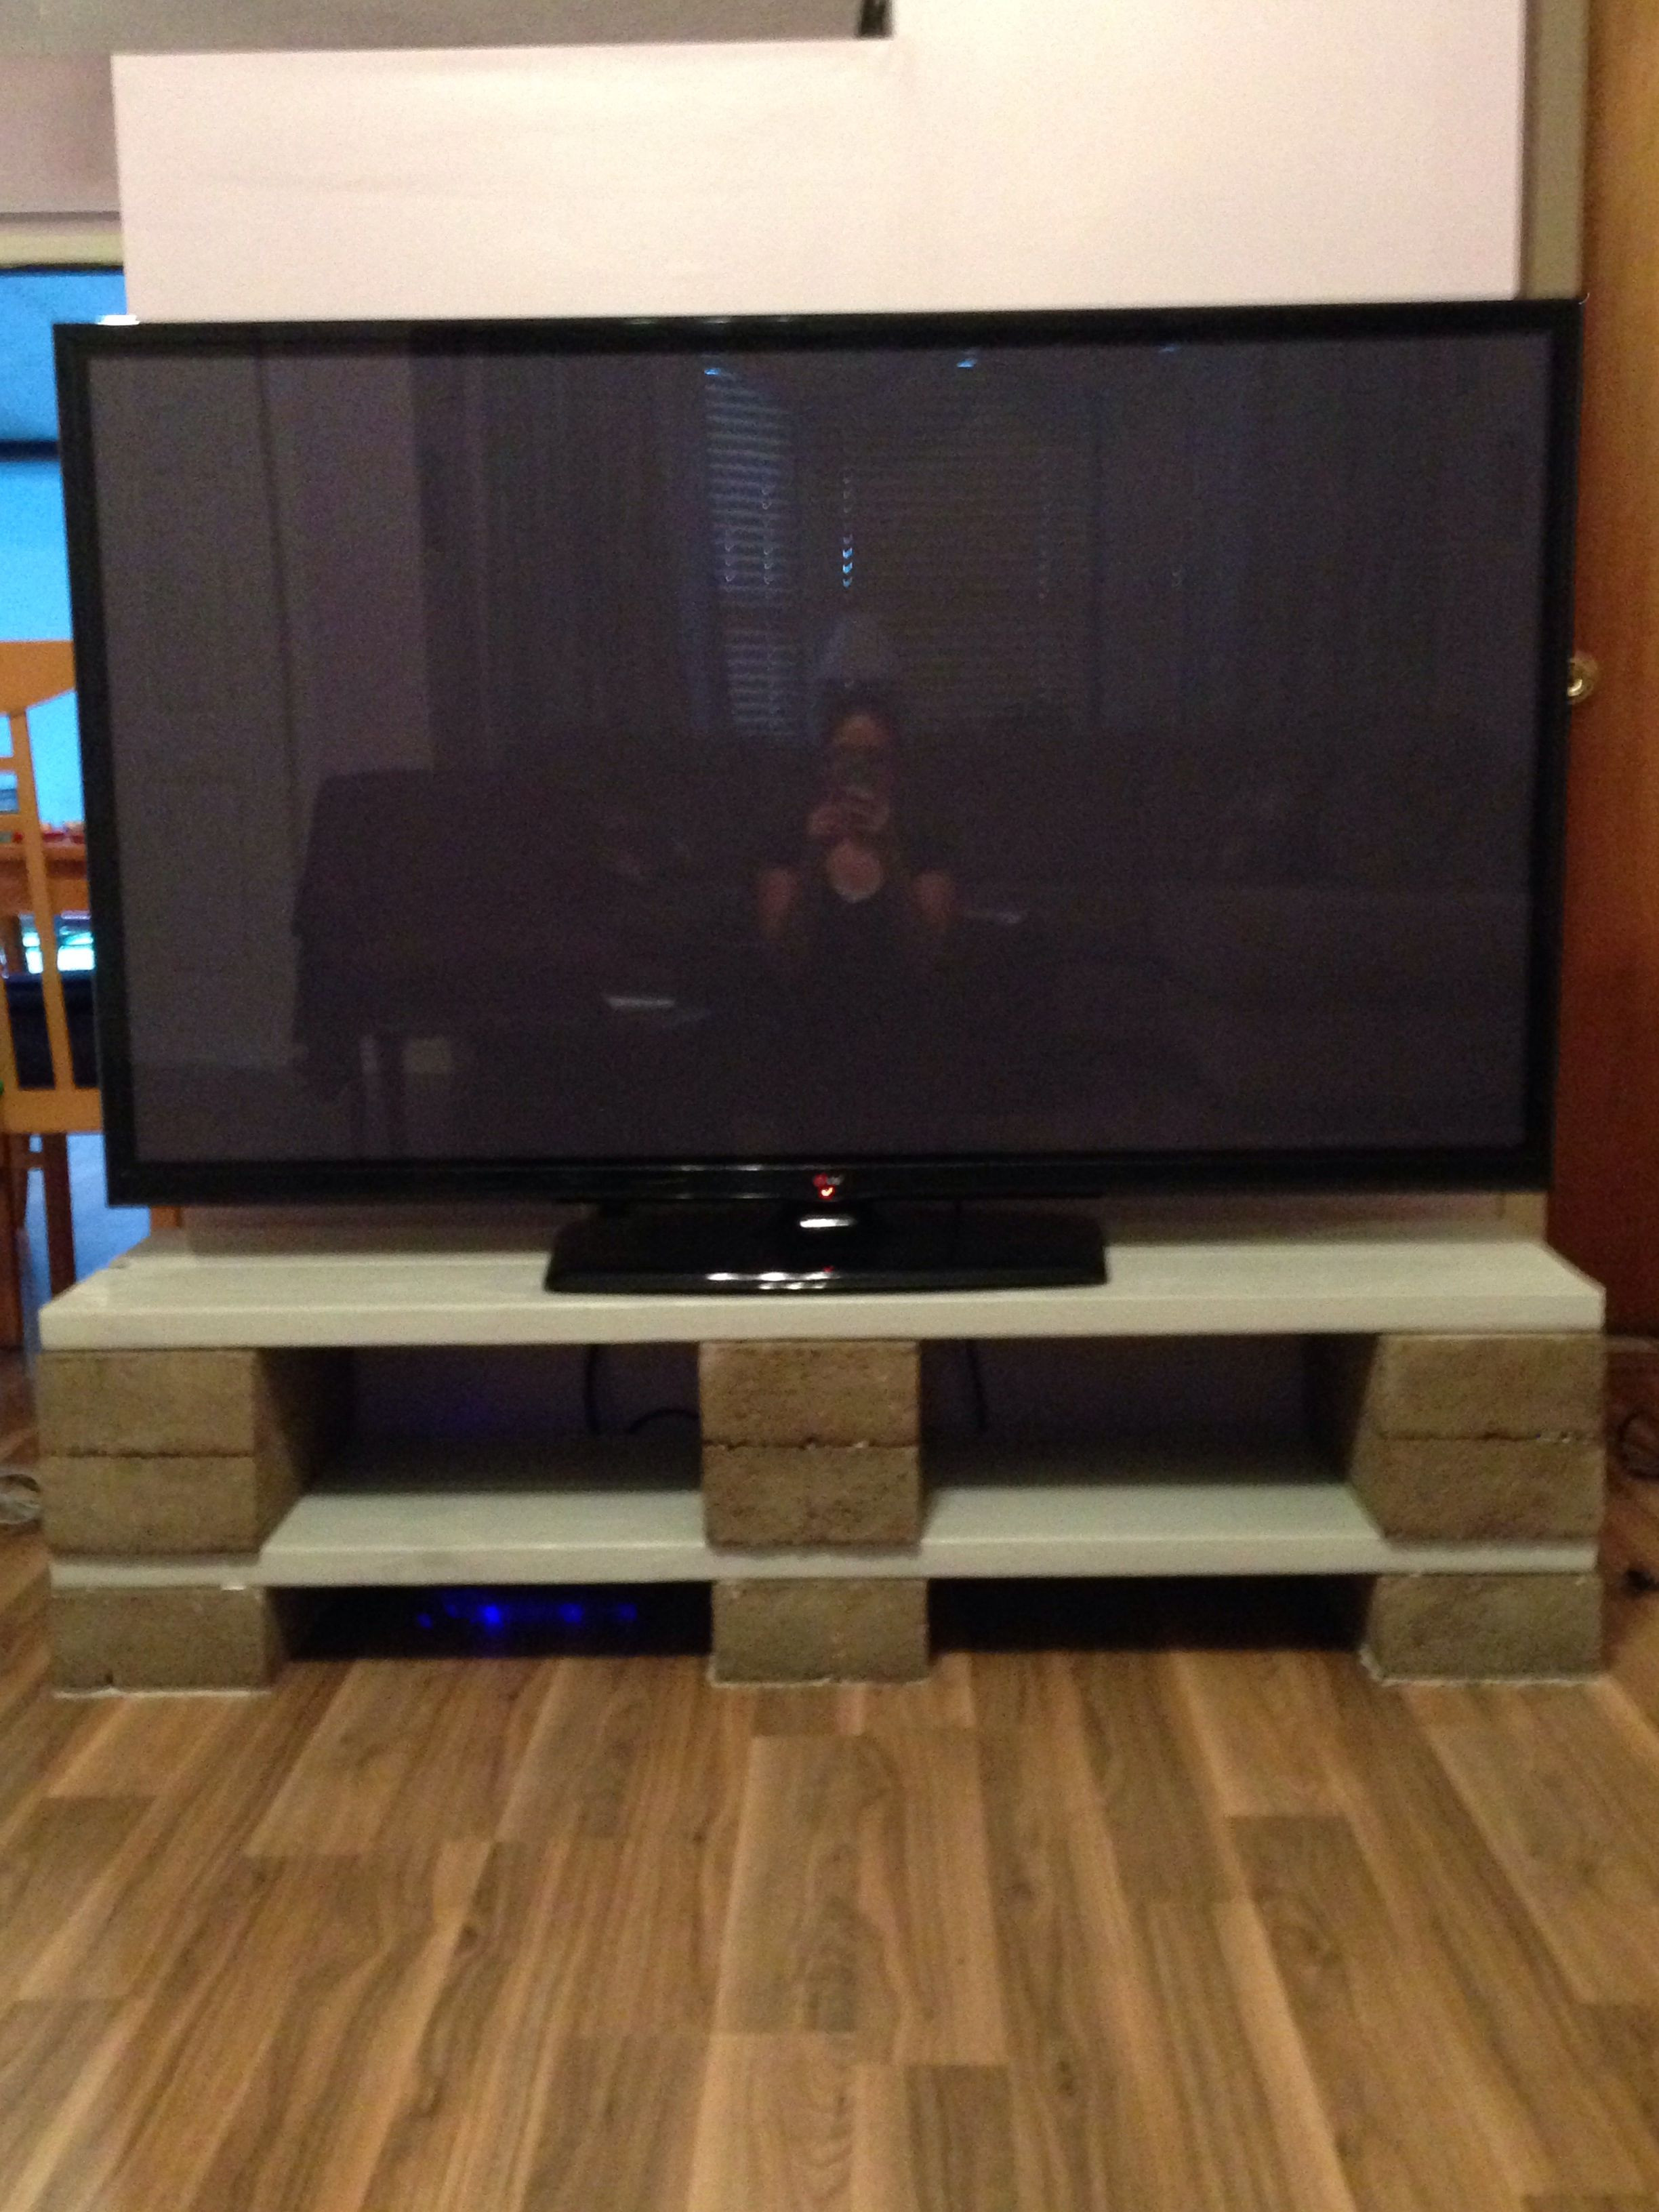 hardwood floor installation des moines of diy tv stand made out of cinder blocks and wood supplies cost about with regard to diy tv stand made out of cinder blocks and wood supplies cost about 40